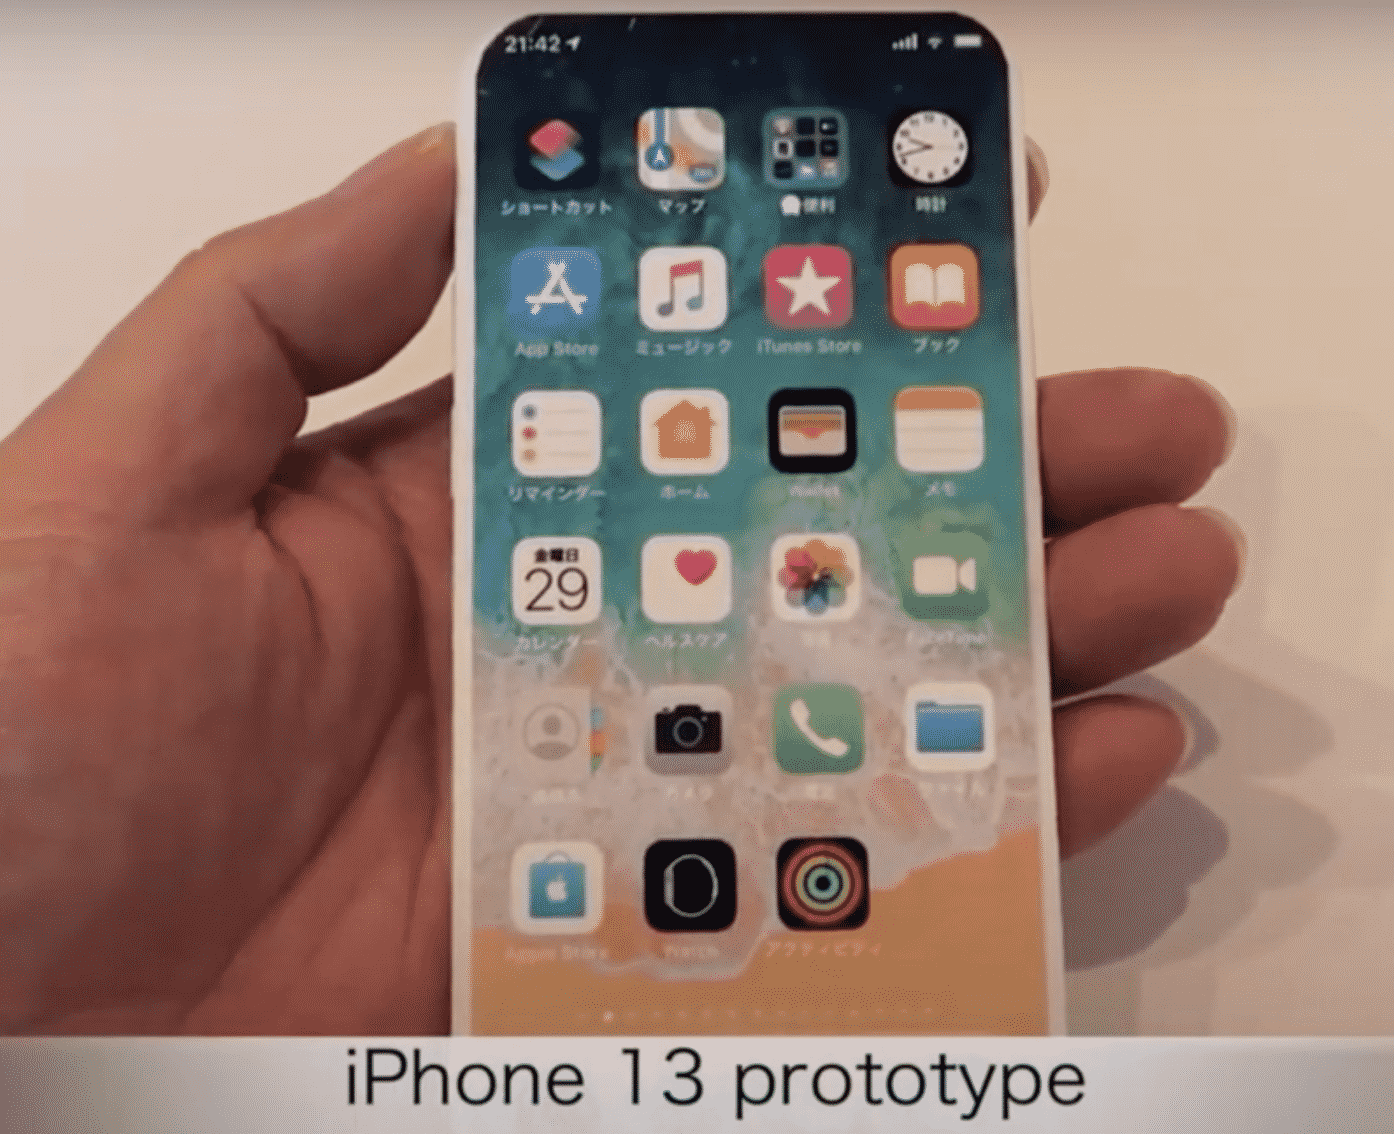 Apple iPhone 13 prototype images surface online